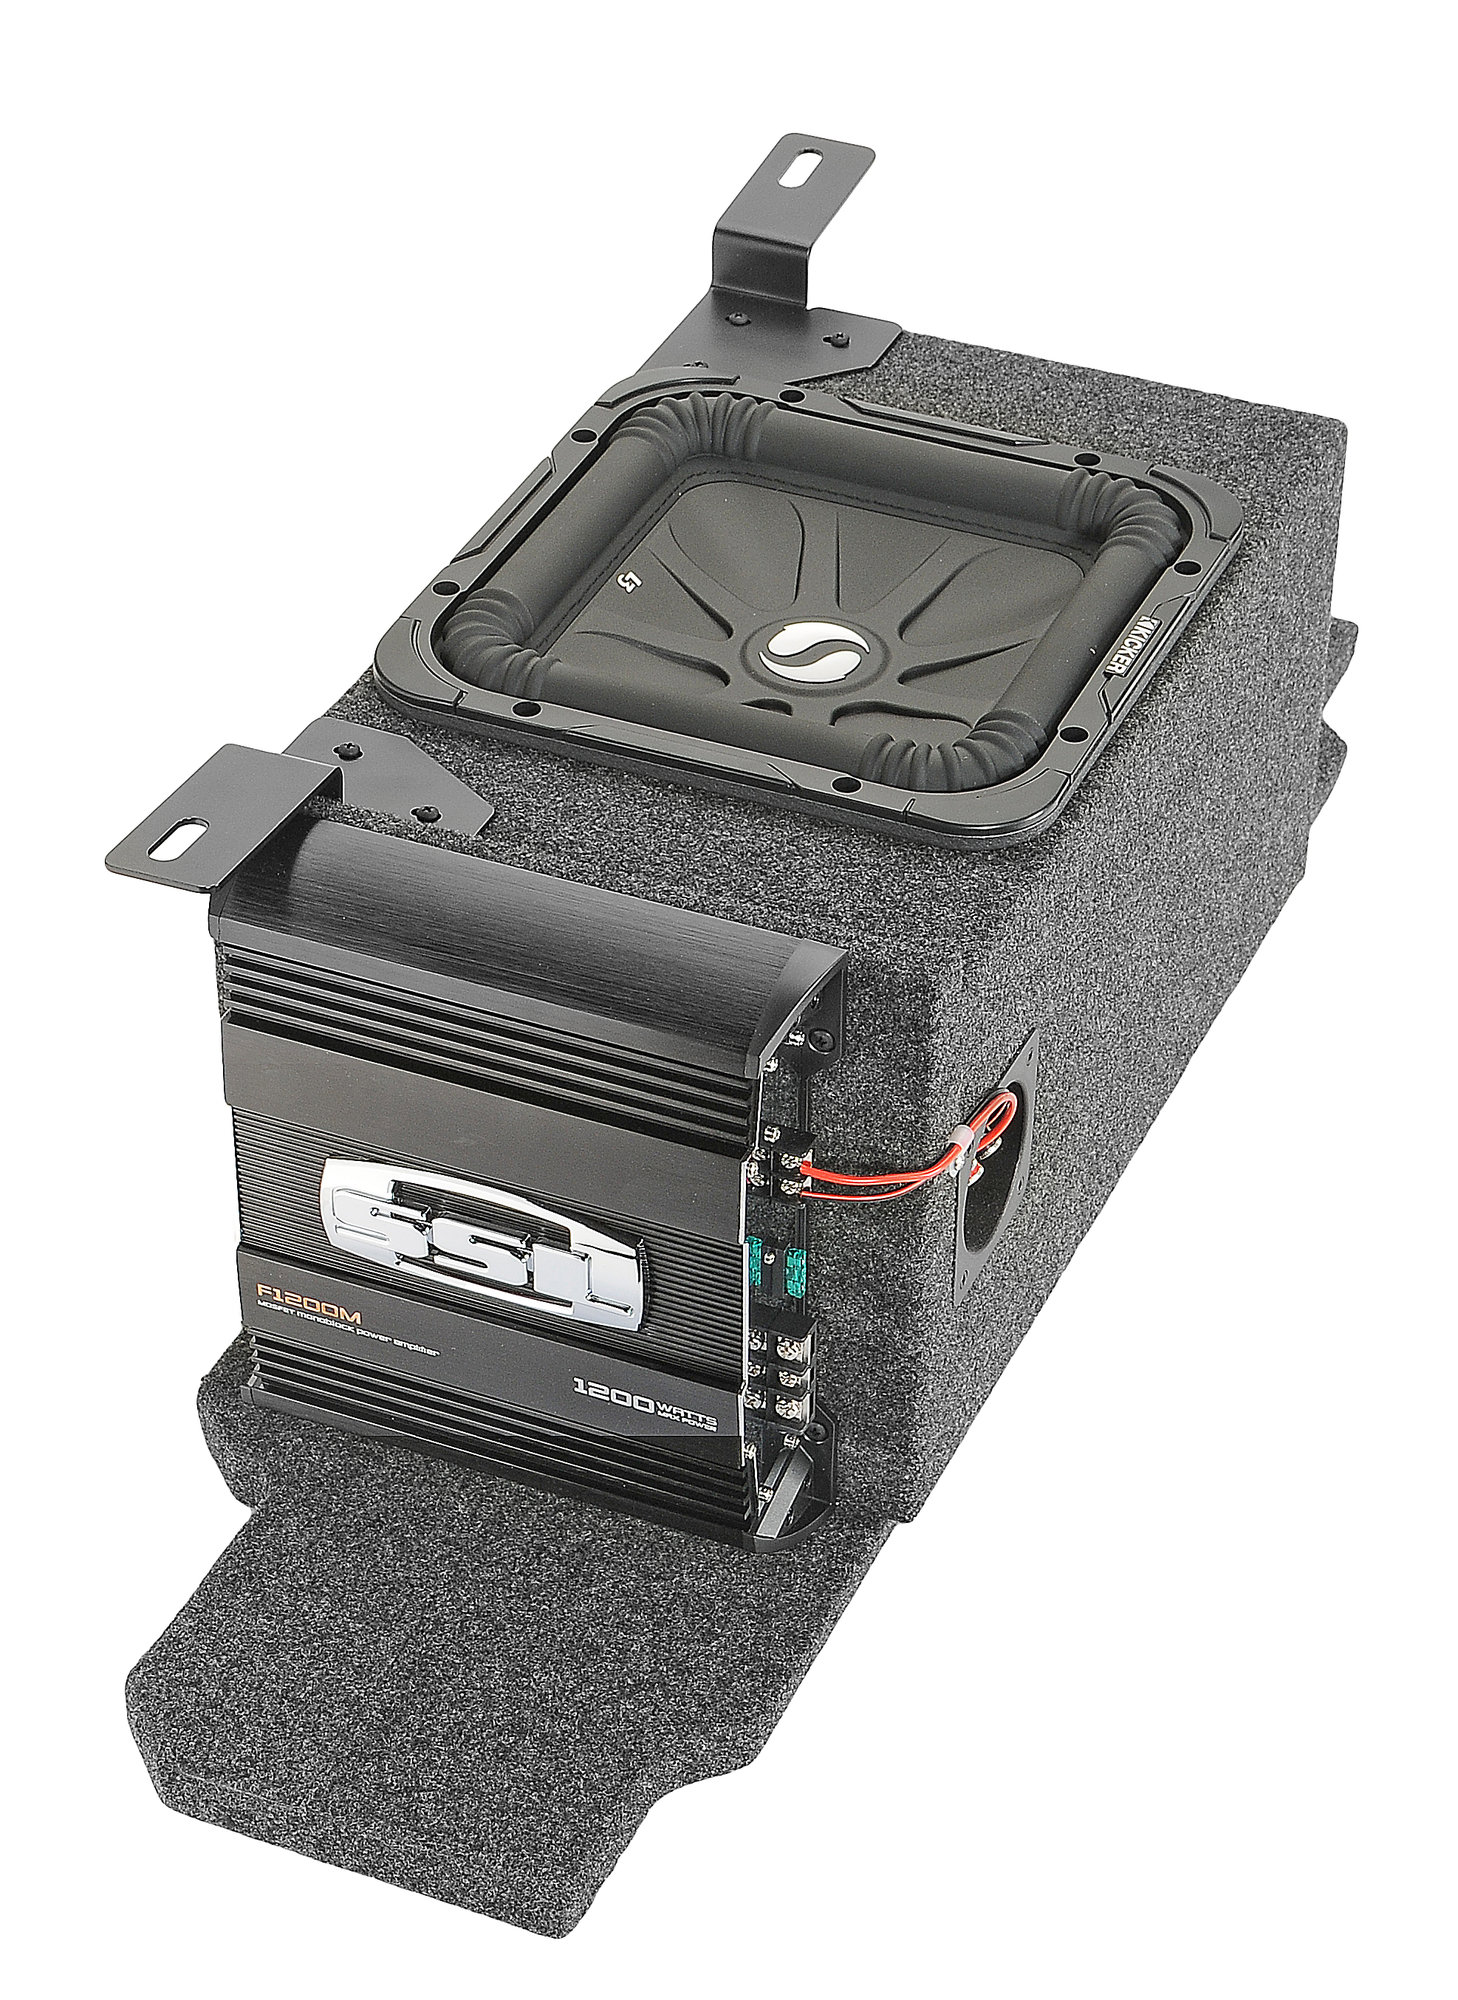 hight resolution of kicker custom rear subwoofer kit with 10 kicker solo baric l7 subwoofer for 03 06 jeep wrangler tj quadratec